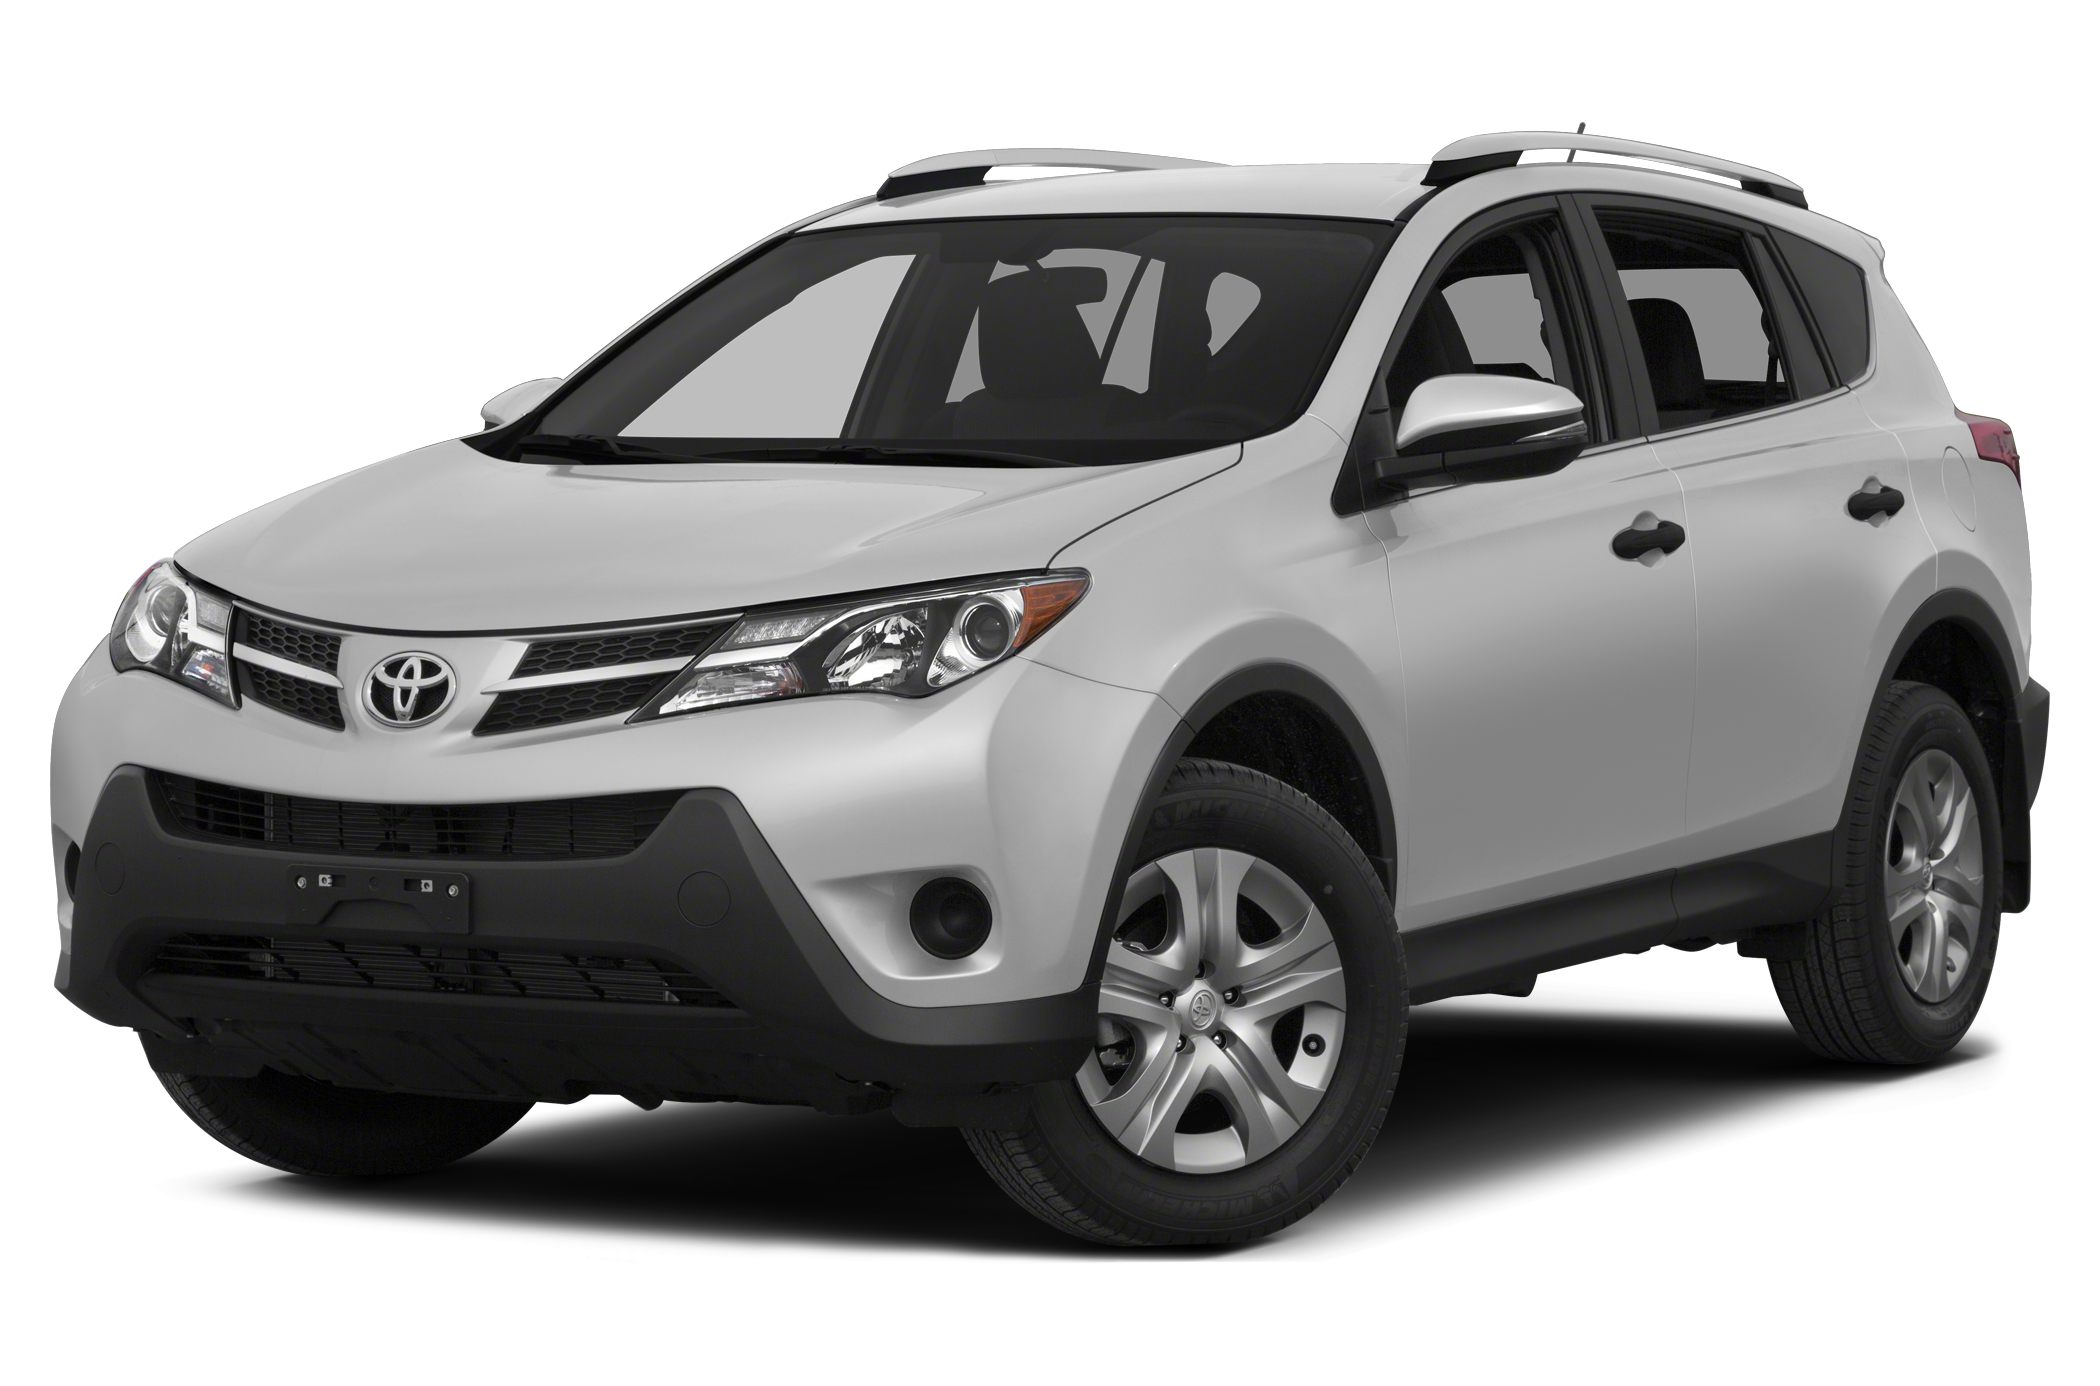 2014 Toyota RAV4 XLE SUV for sale in Selinsgrove for $28,988 with 10,097 miles.